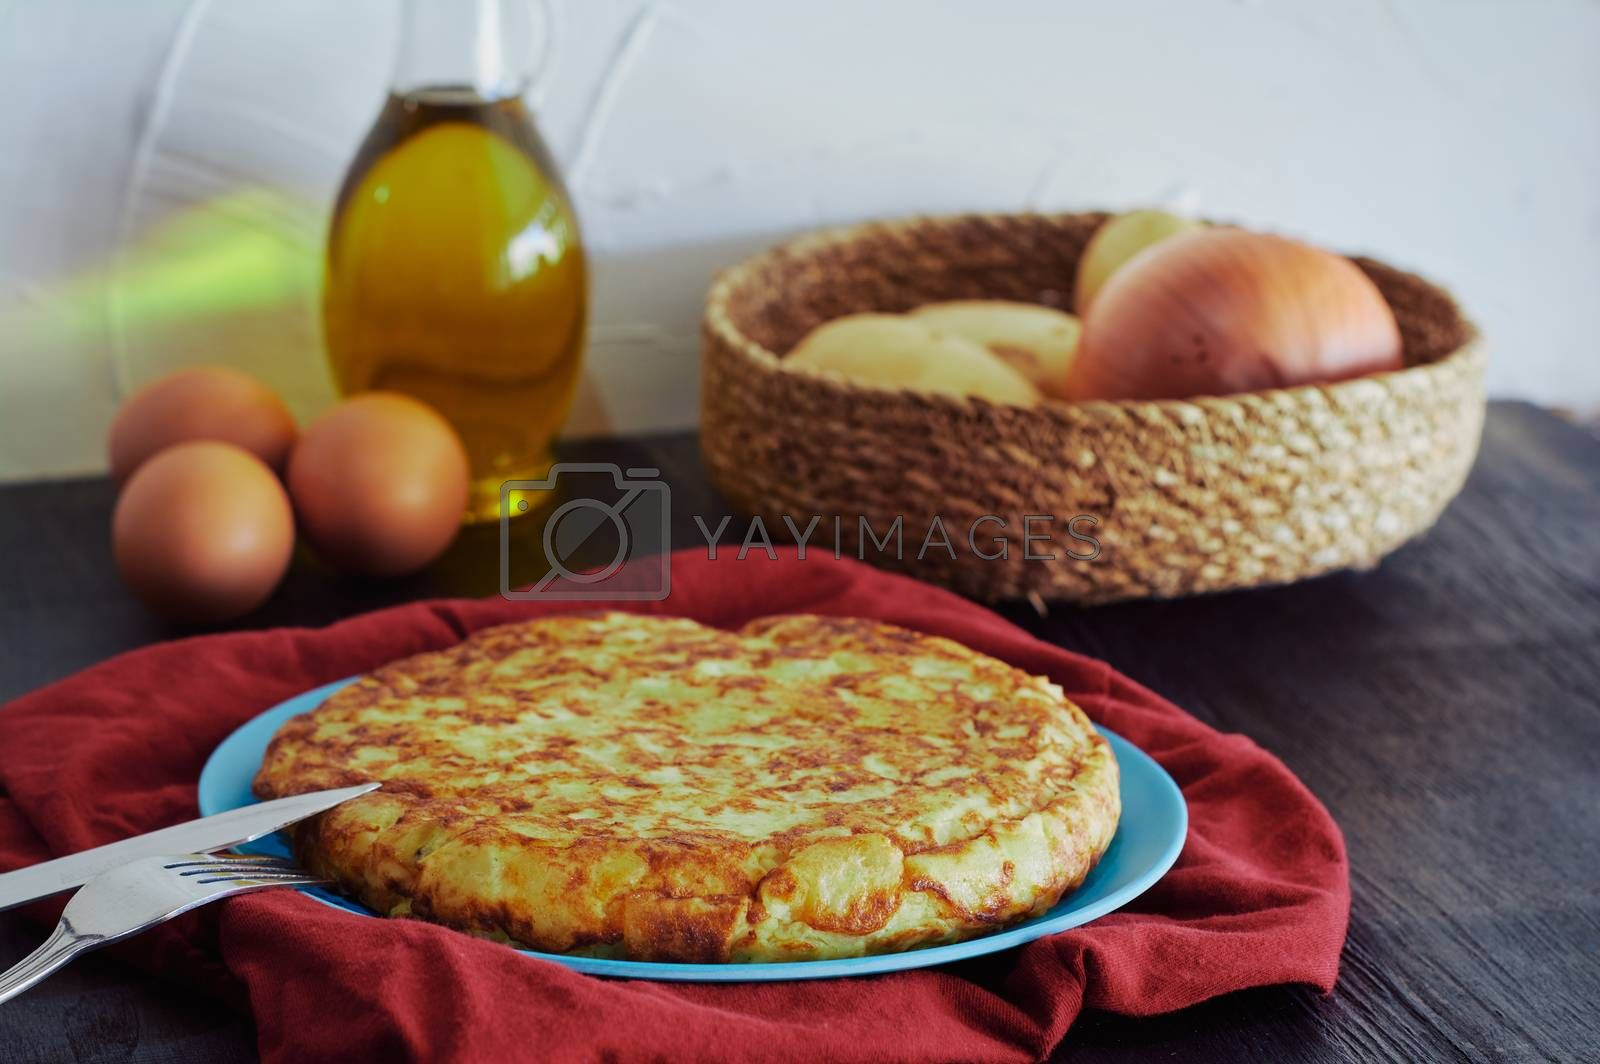 Spanish omelette with potato, egg and onion, accompanied by olive oil